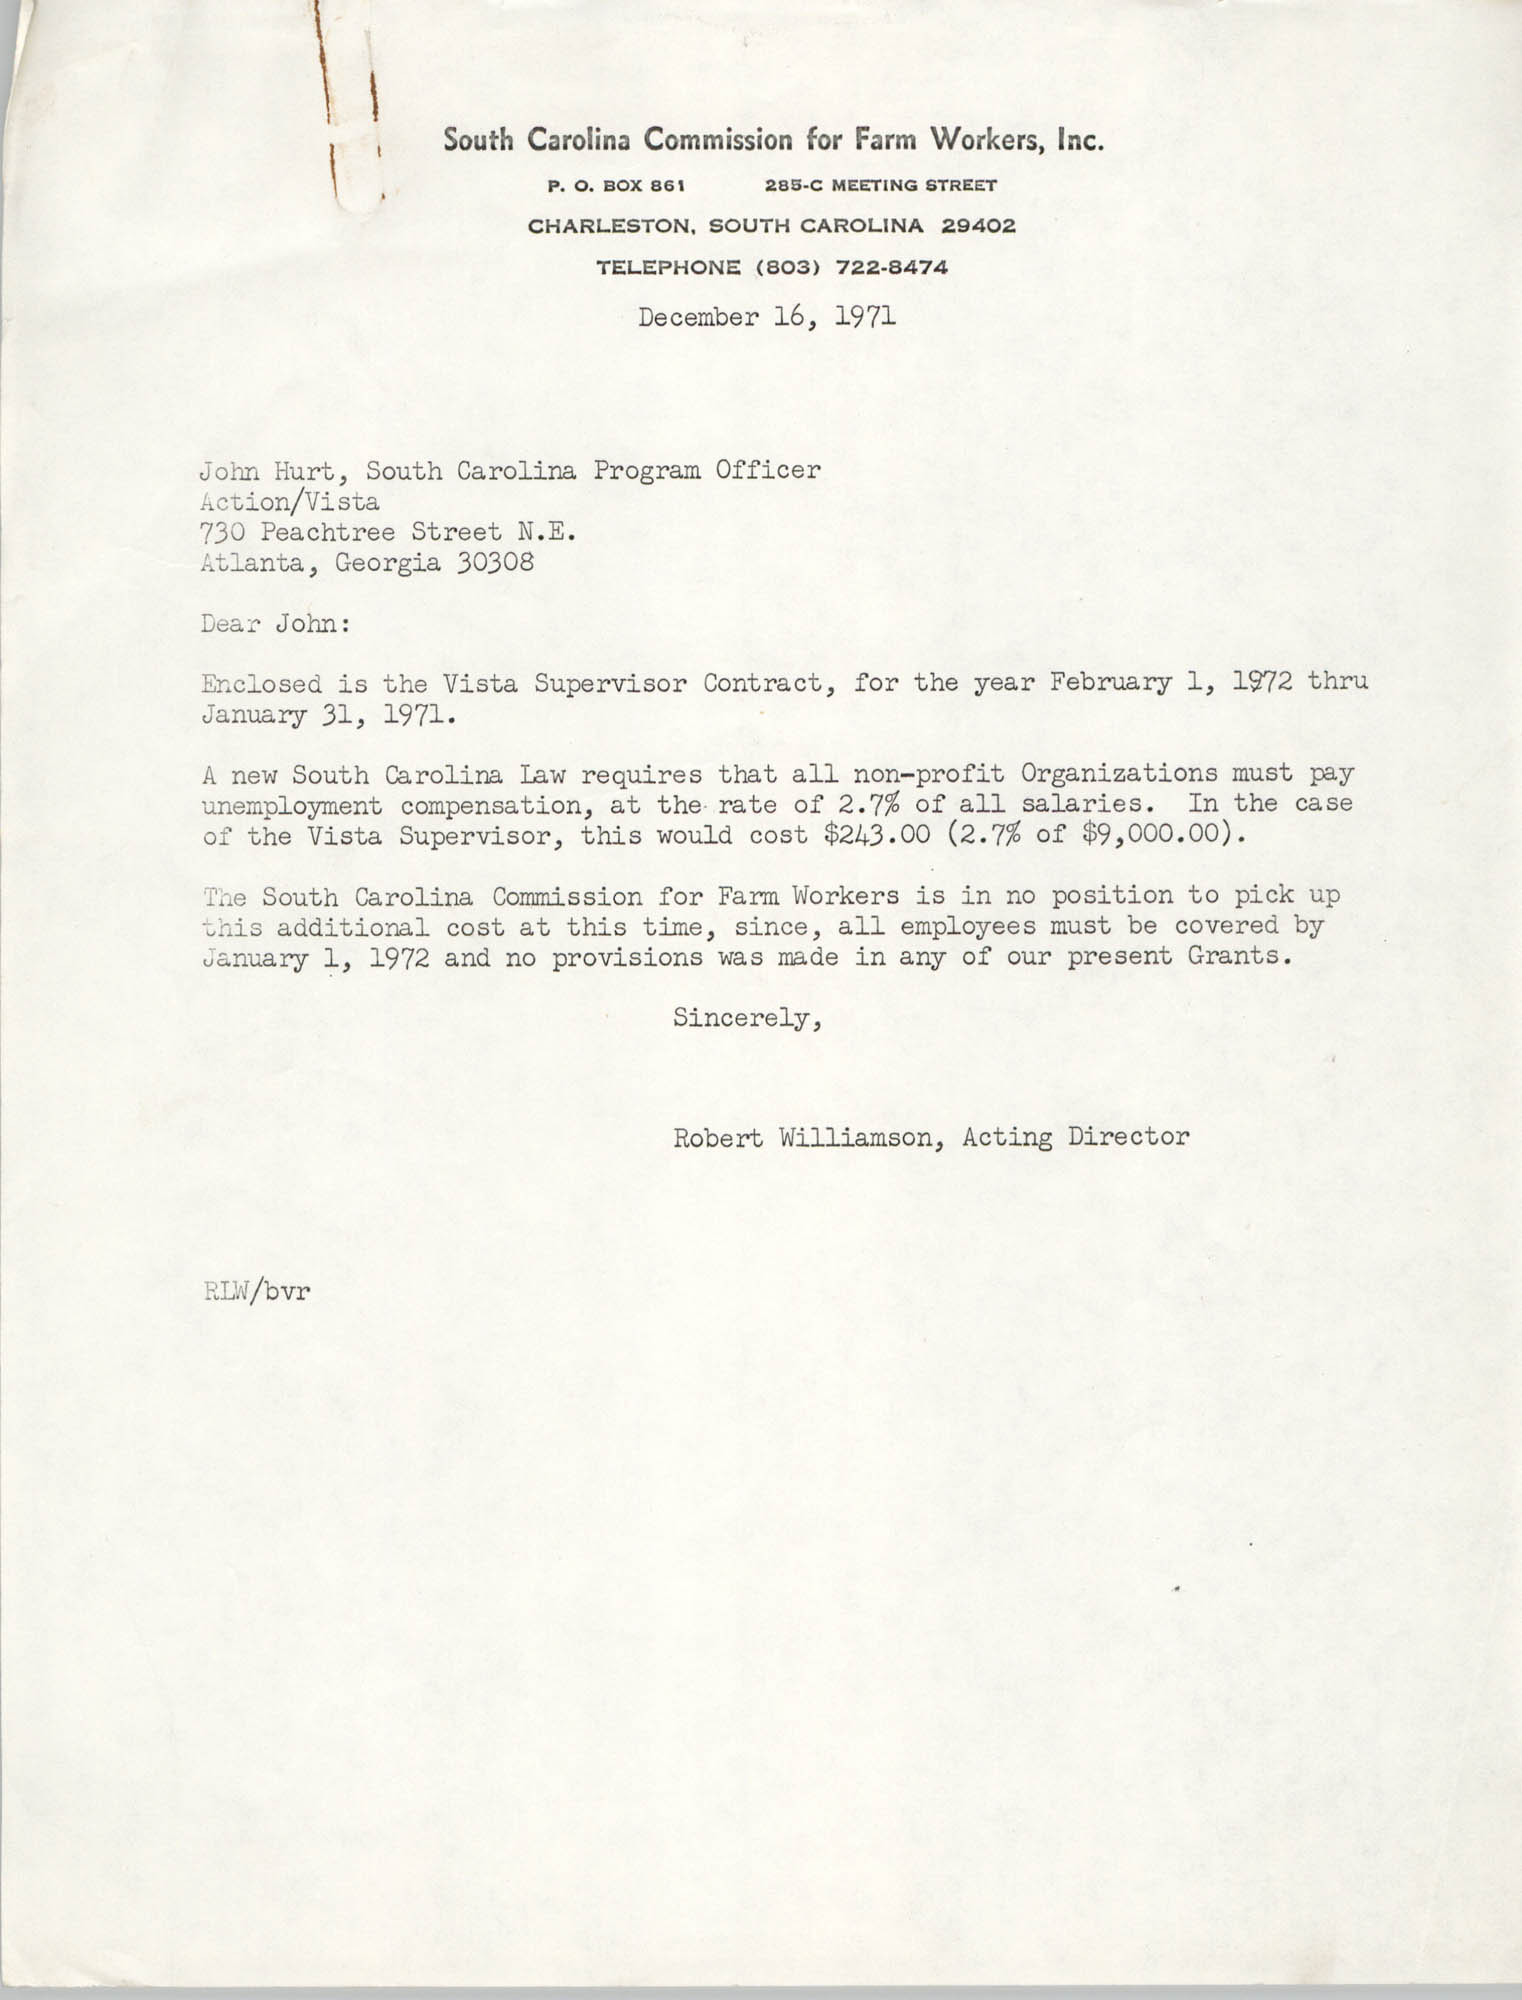 Letter from Robert Williamson to John Hurt, December 16, 1971